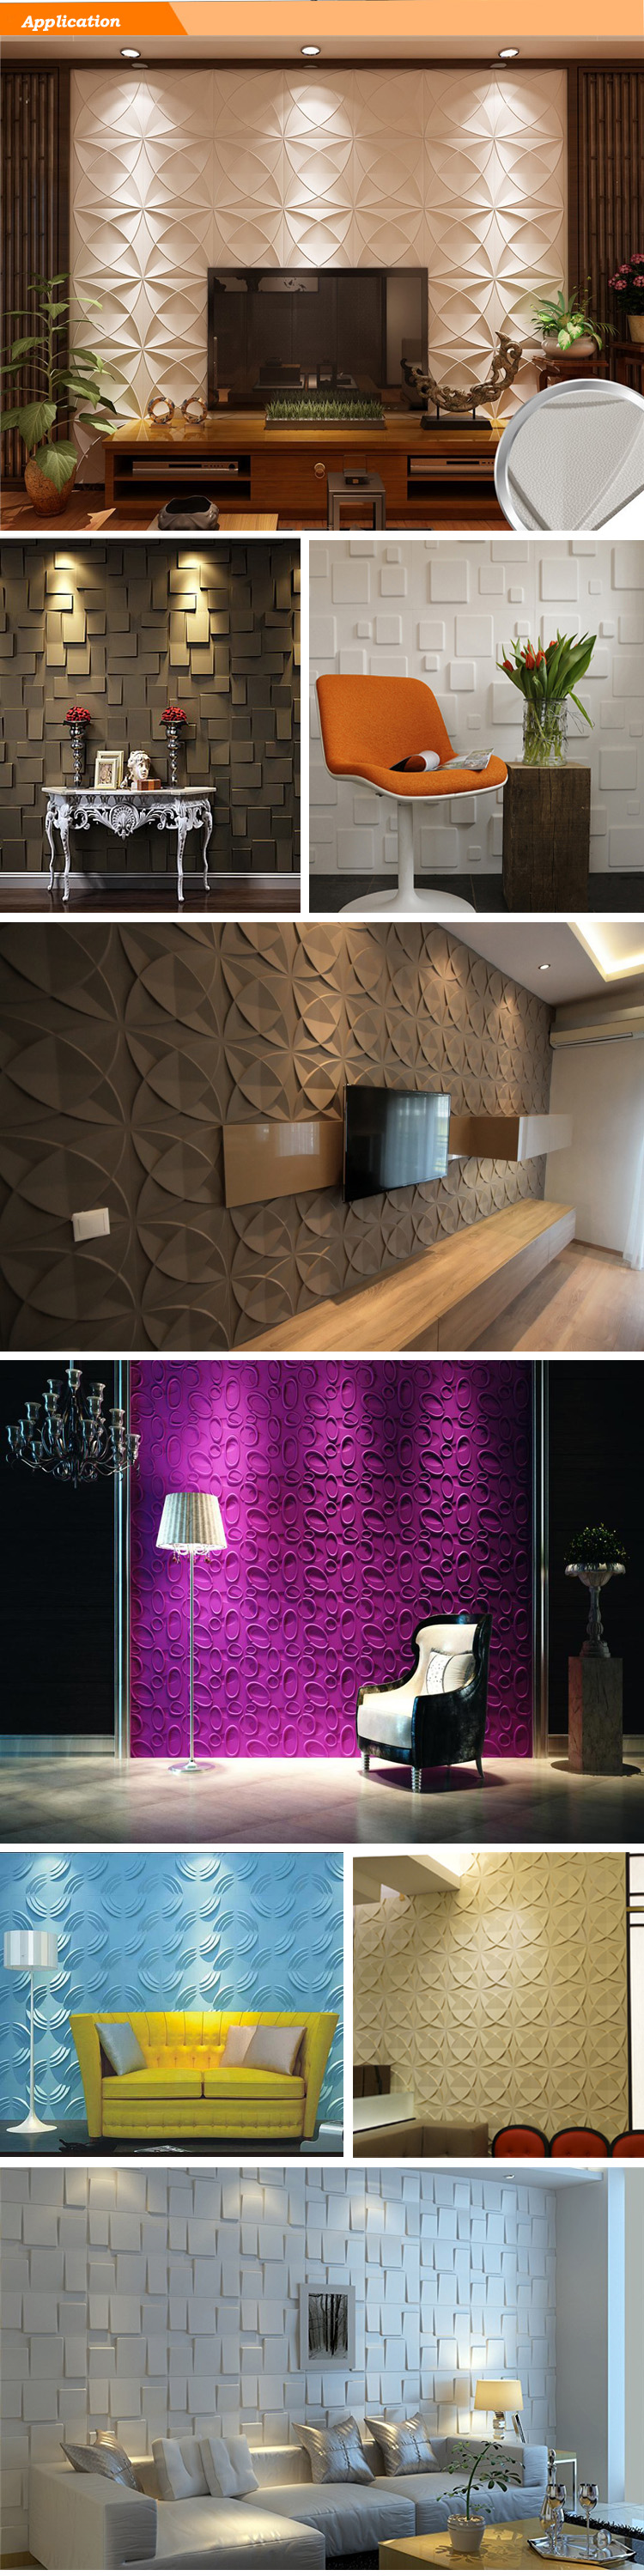 2020 Panama Mexico Colombia 3d Wallpaper Home Decoration panel 3d pared 3D Wall Panel Wallpaper